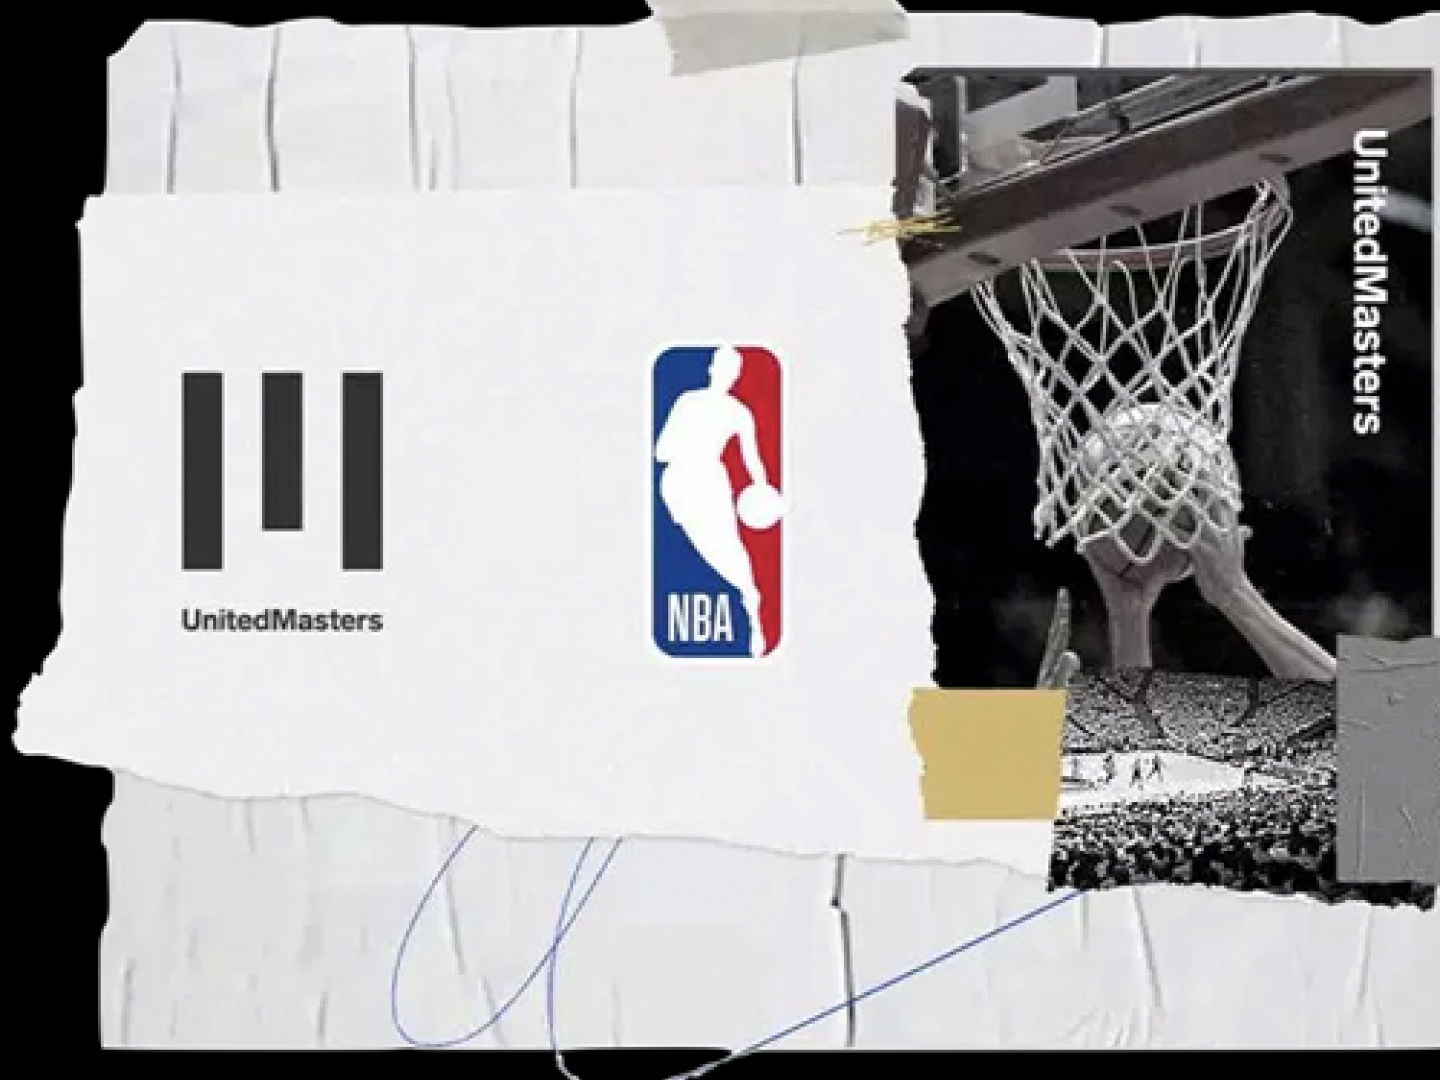 Soundtracking the NBA Thumbnail